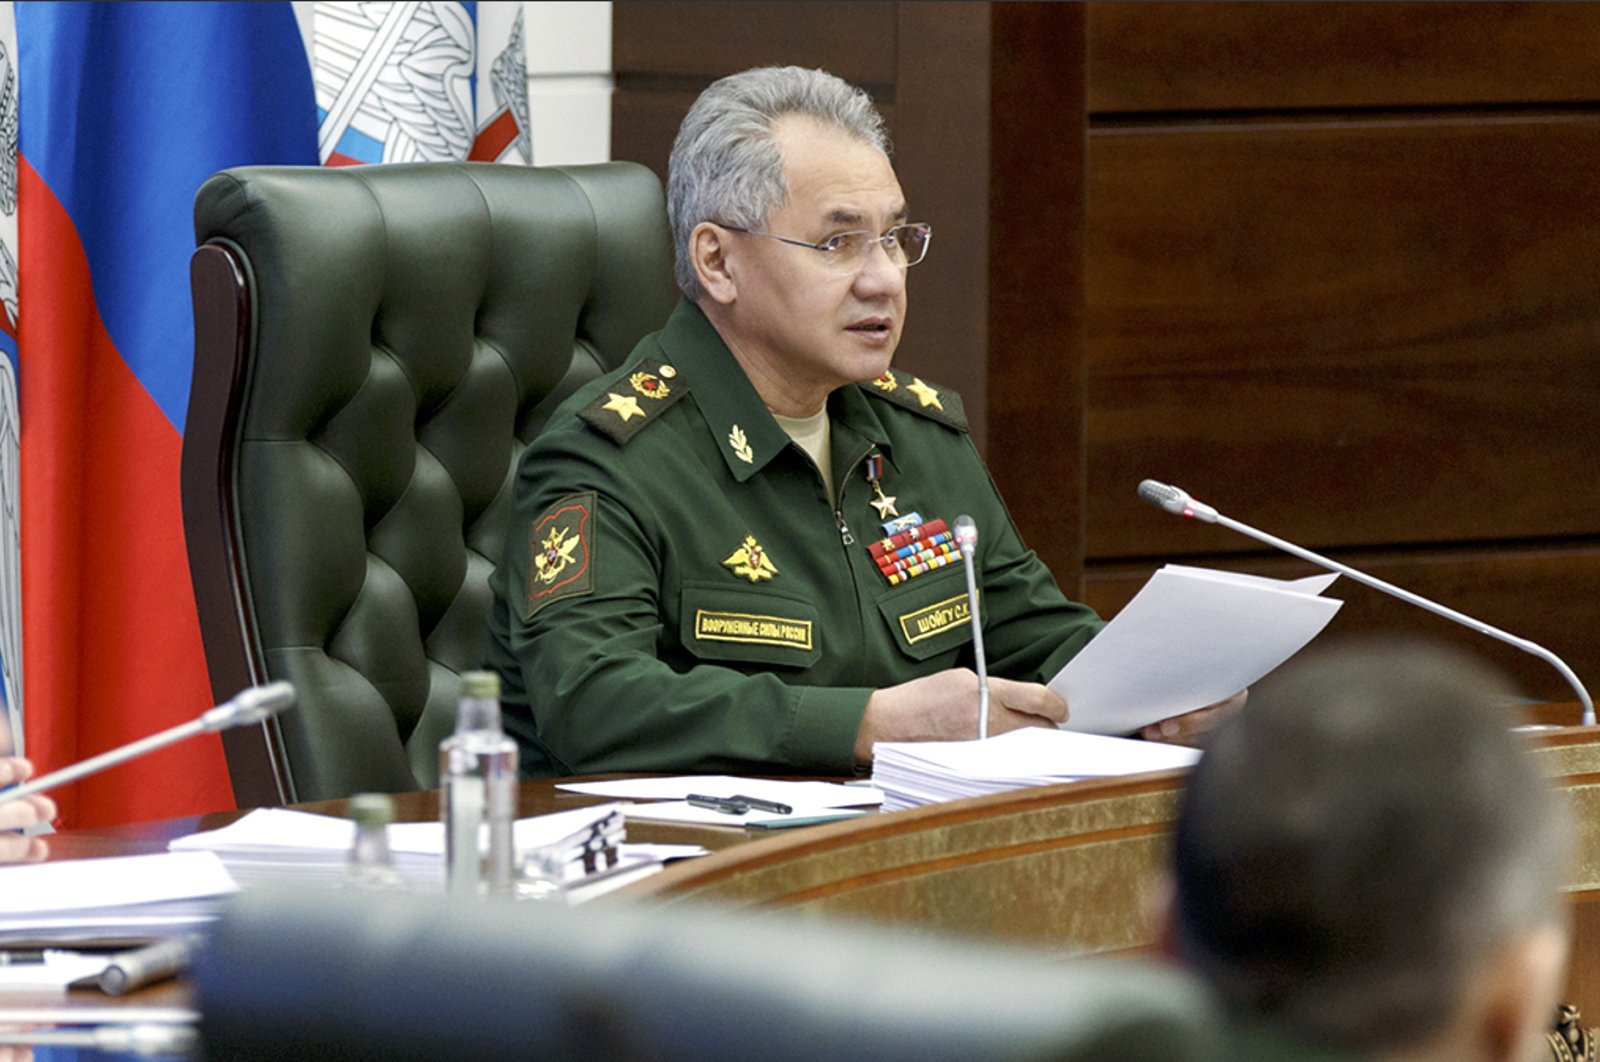 In this handout photo released by the Russian Defense Ministry Press Service, Russian Defense Minister Sergei Shoigu speaks during a meeting with high-level military officials in Moscow, Russia, May 31, 2021. (AP Photo)